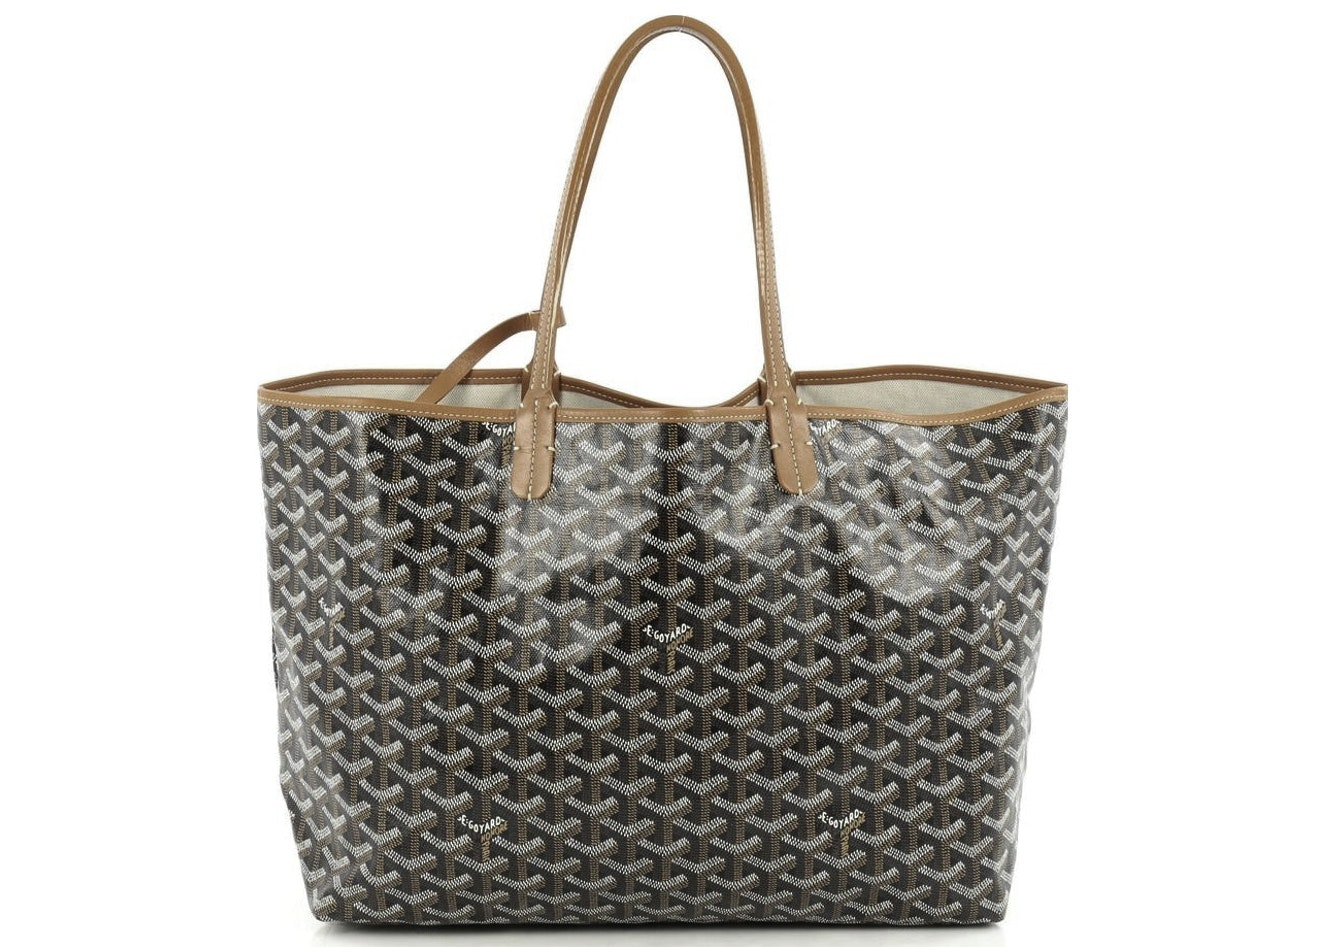 Goyard St. Louis Tote Monogram Chevron Multicolor PM Brown